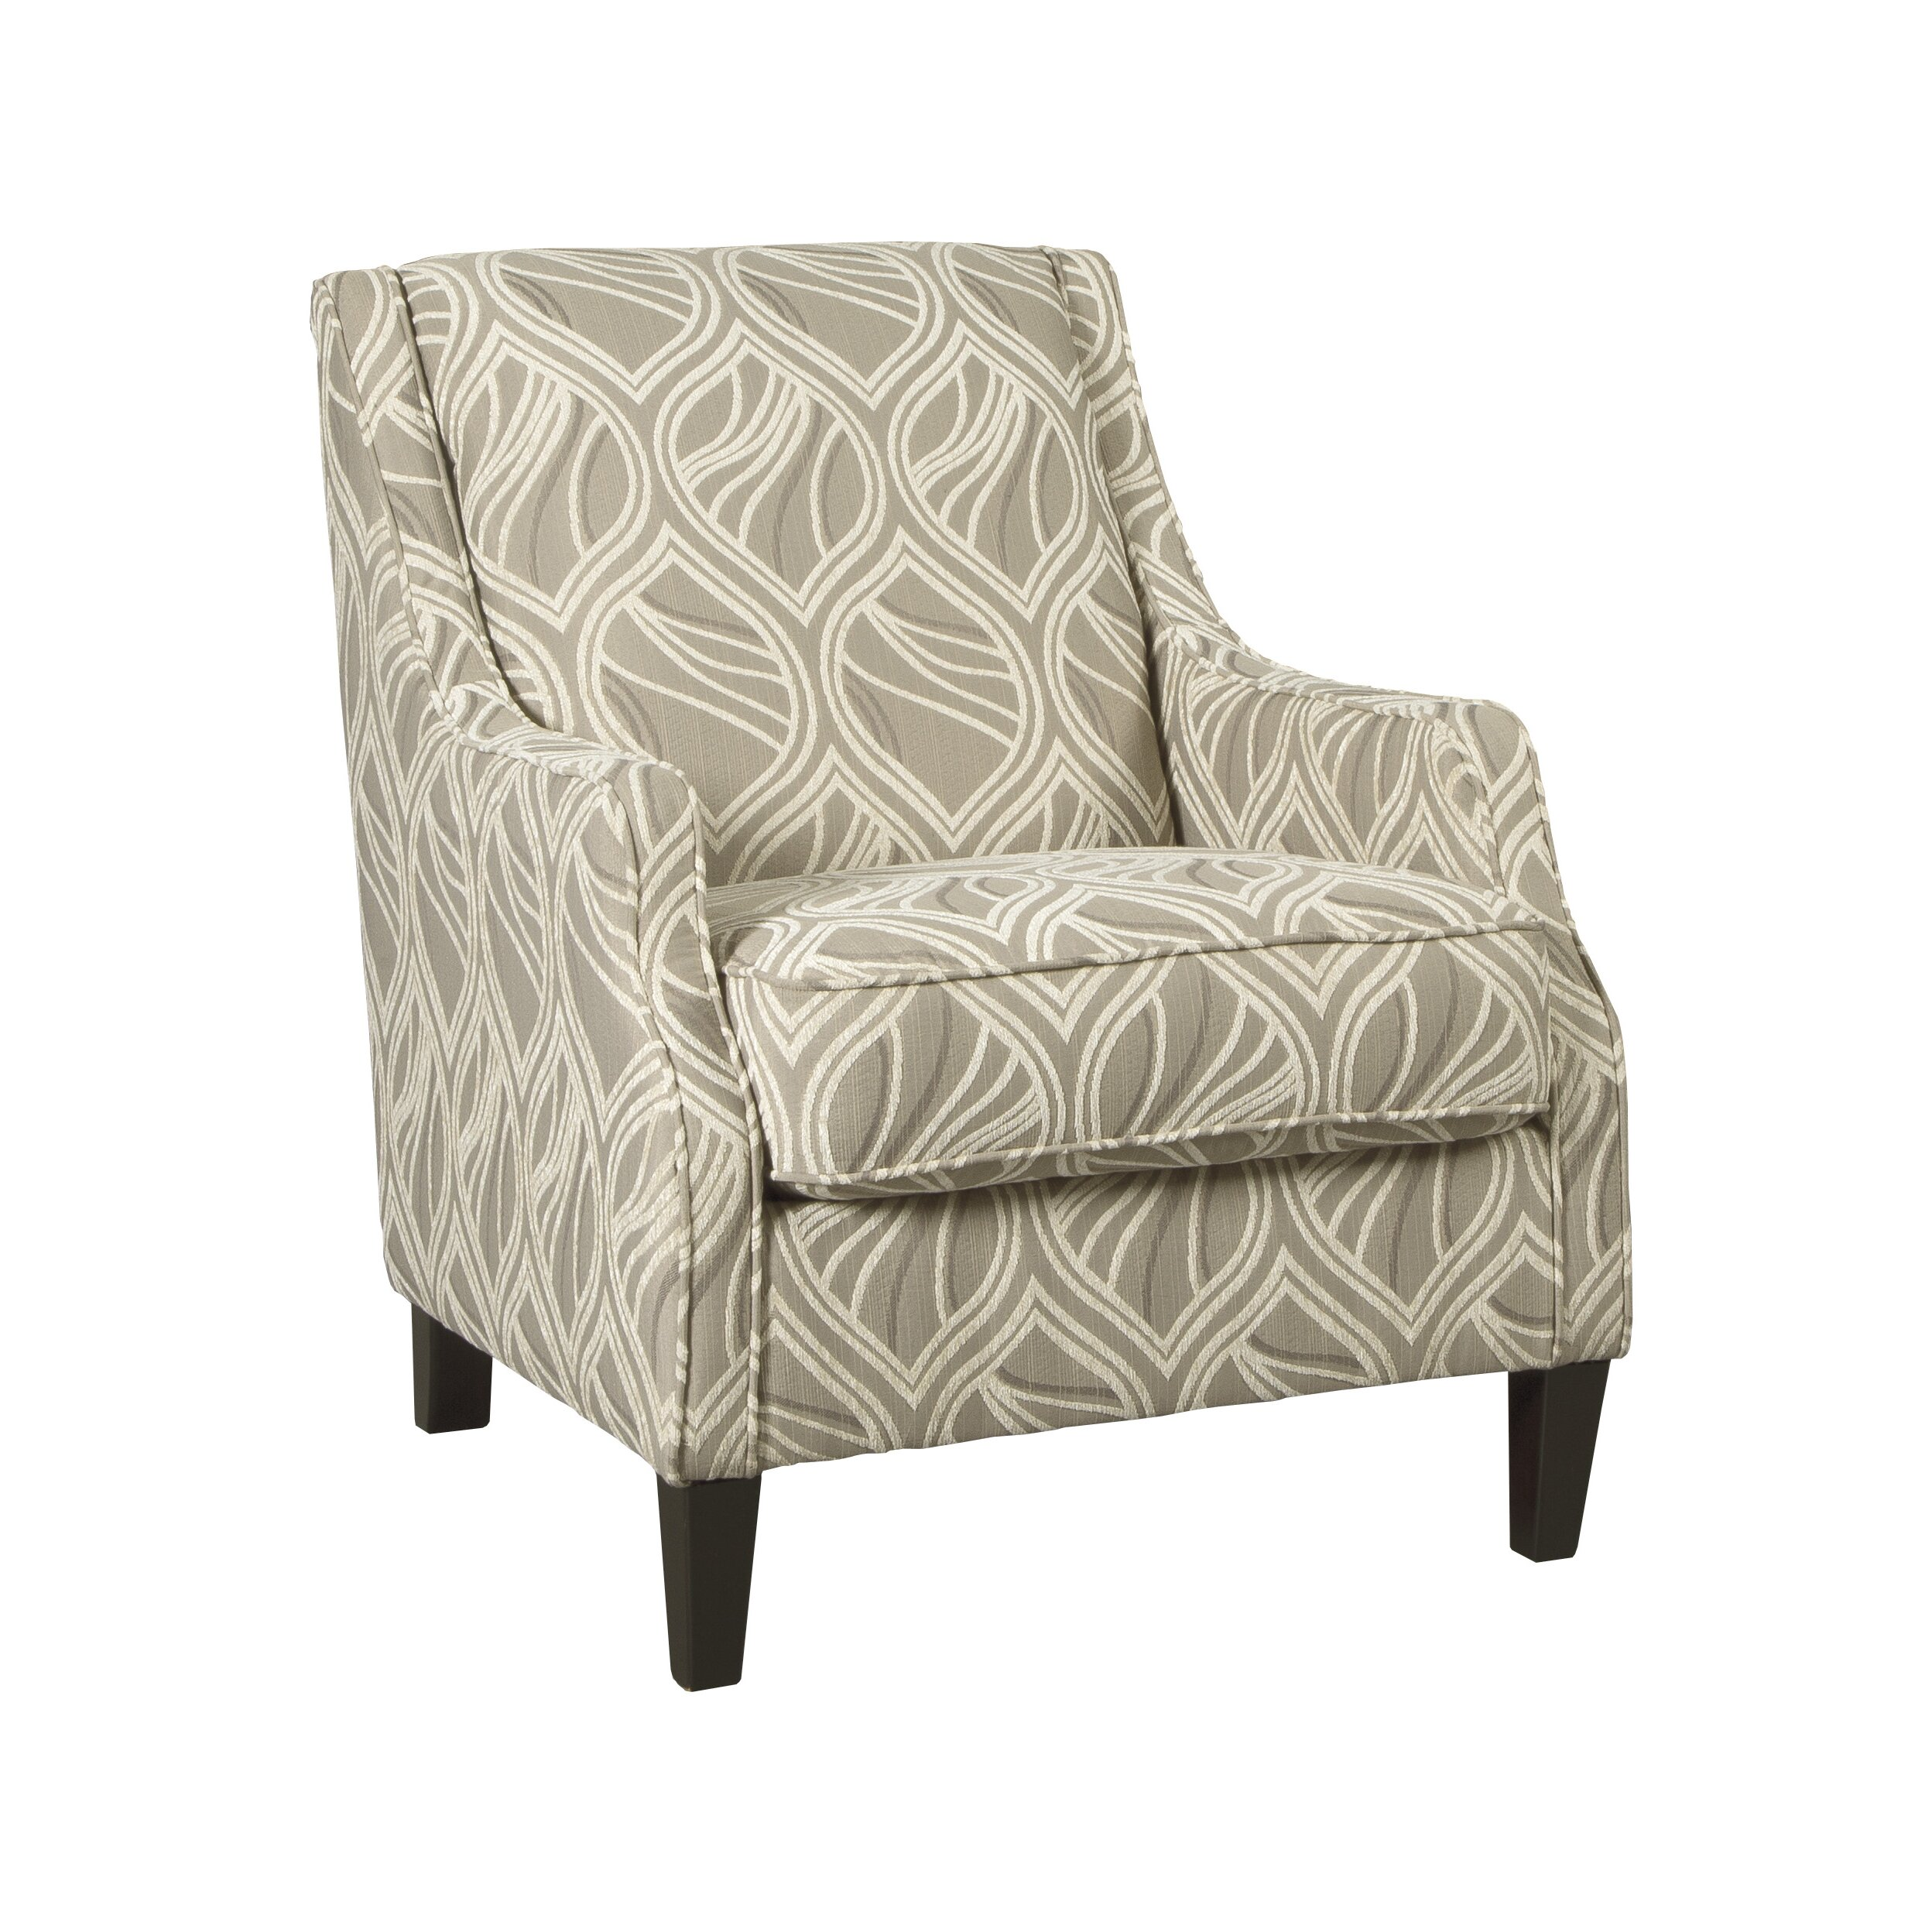 Benchcraft Mauricio Accent Chair Amp Reviews Wayfair